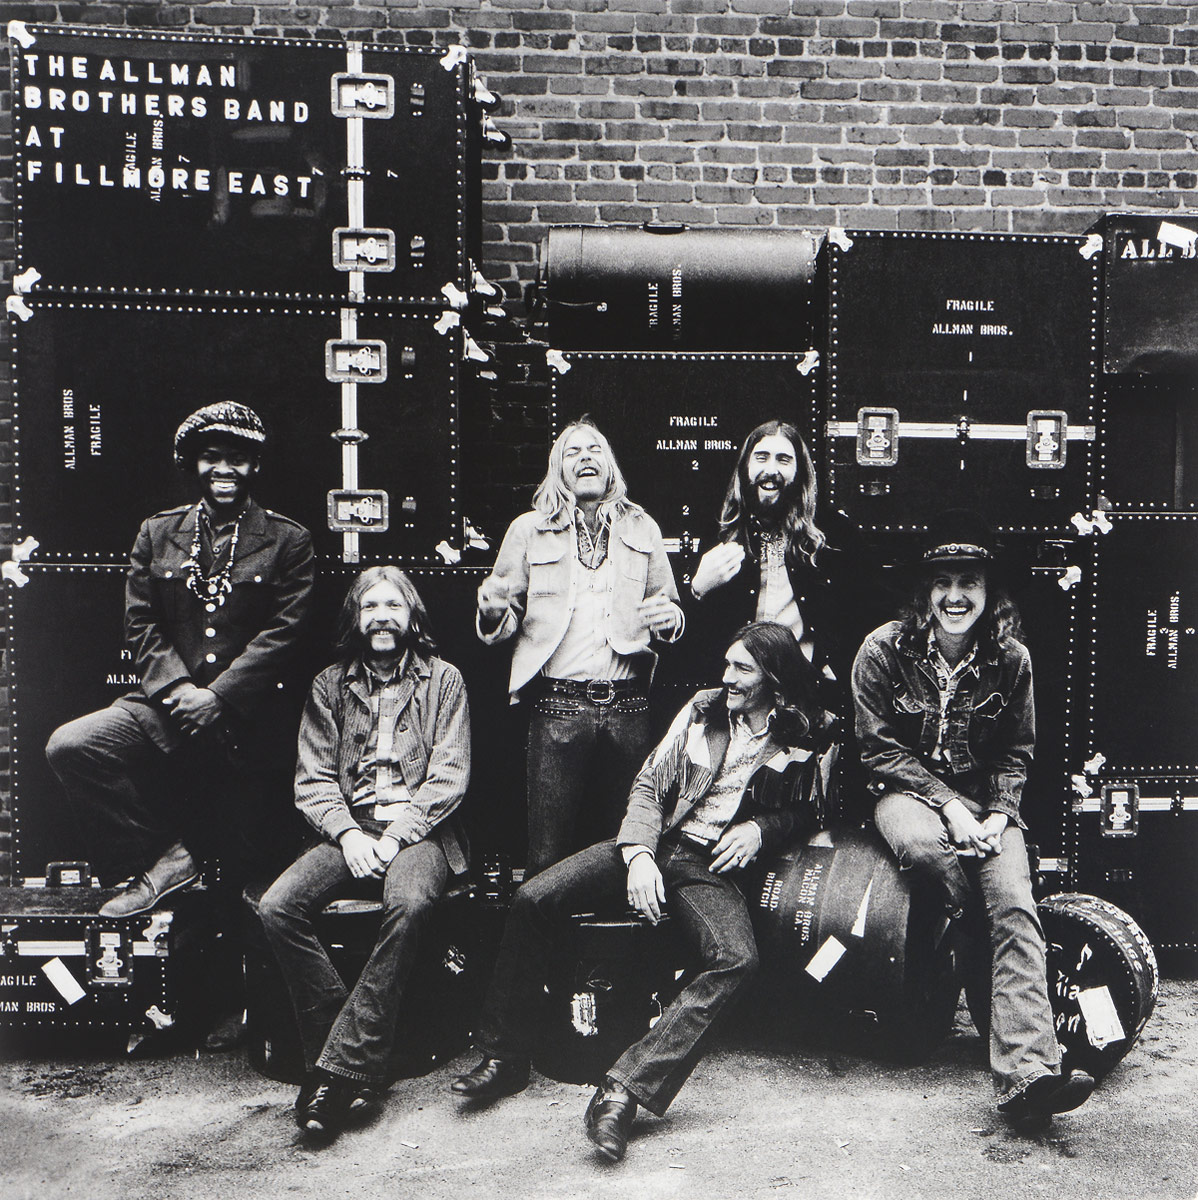 The Allman Brothers Band The Allman Brothers Band. At Fillmore East (2 LP) 6 speed cable band switch 25f